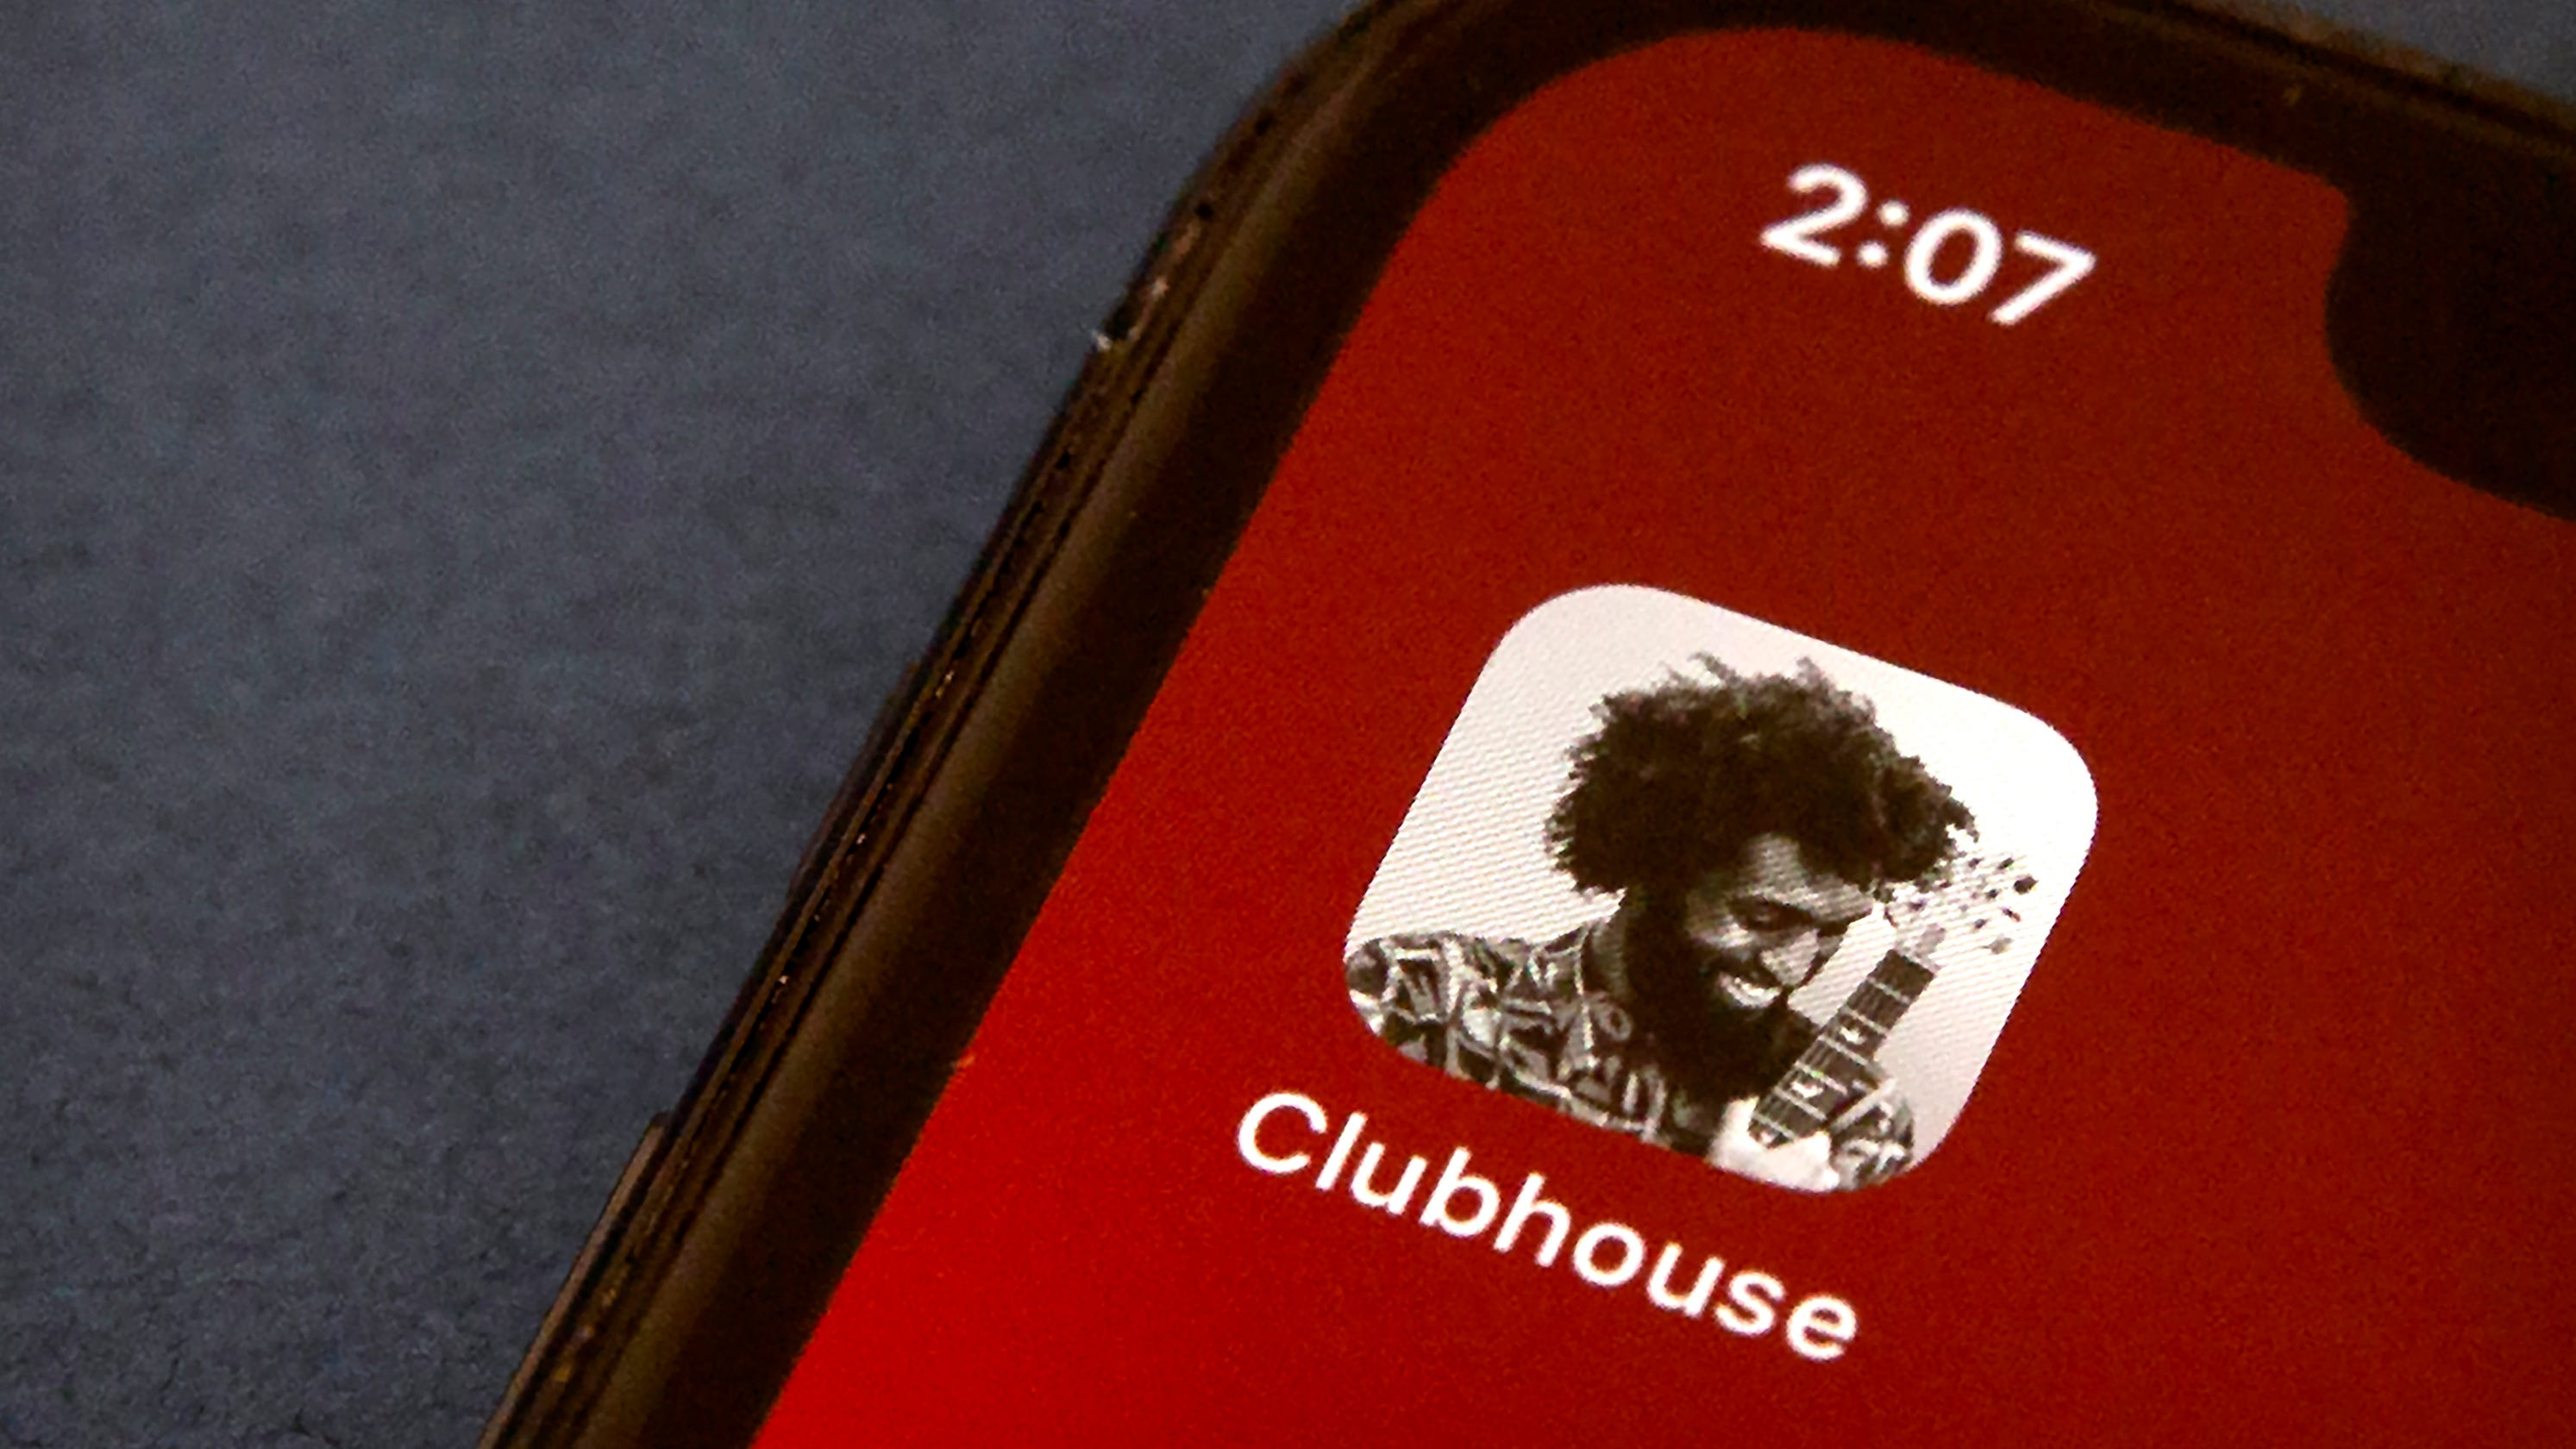 The Clubhouse app: What is the allure of the invite-only social media network? - USA TODAY